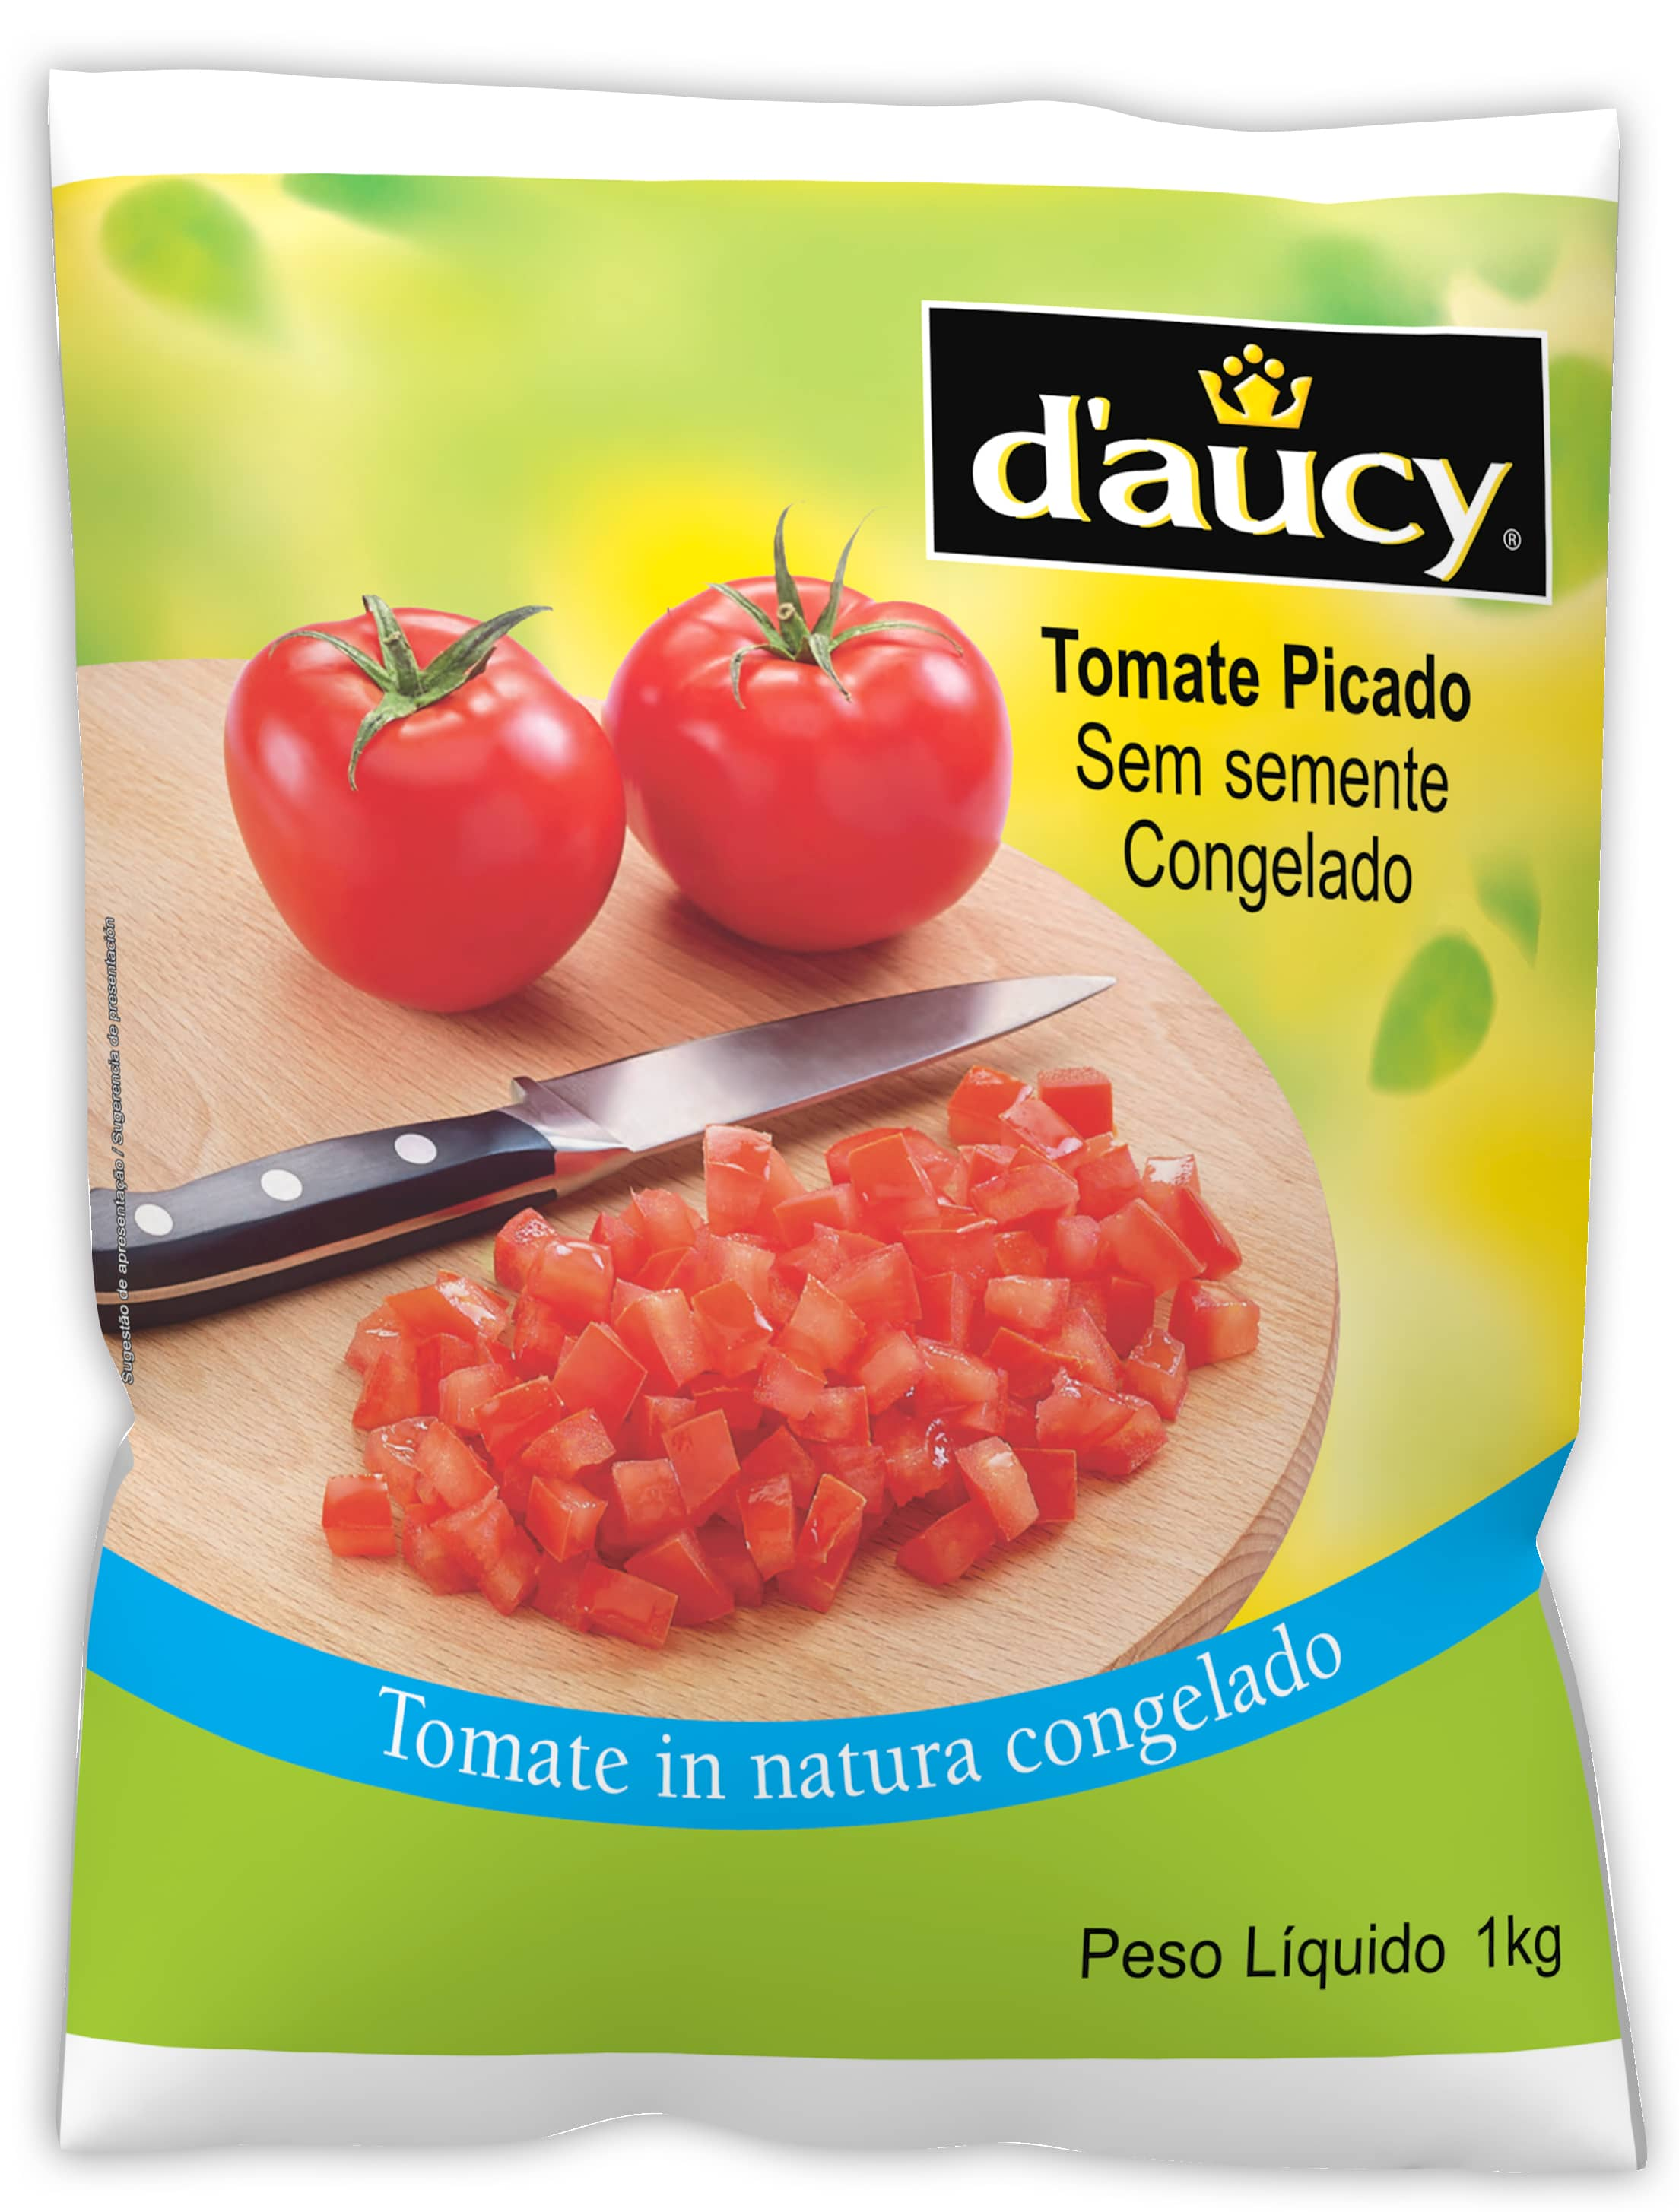 daucy-pacote-tomate-1kg-mockup